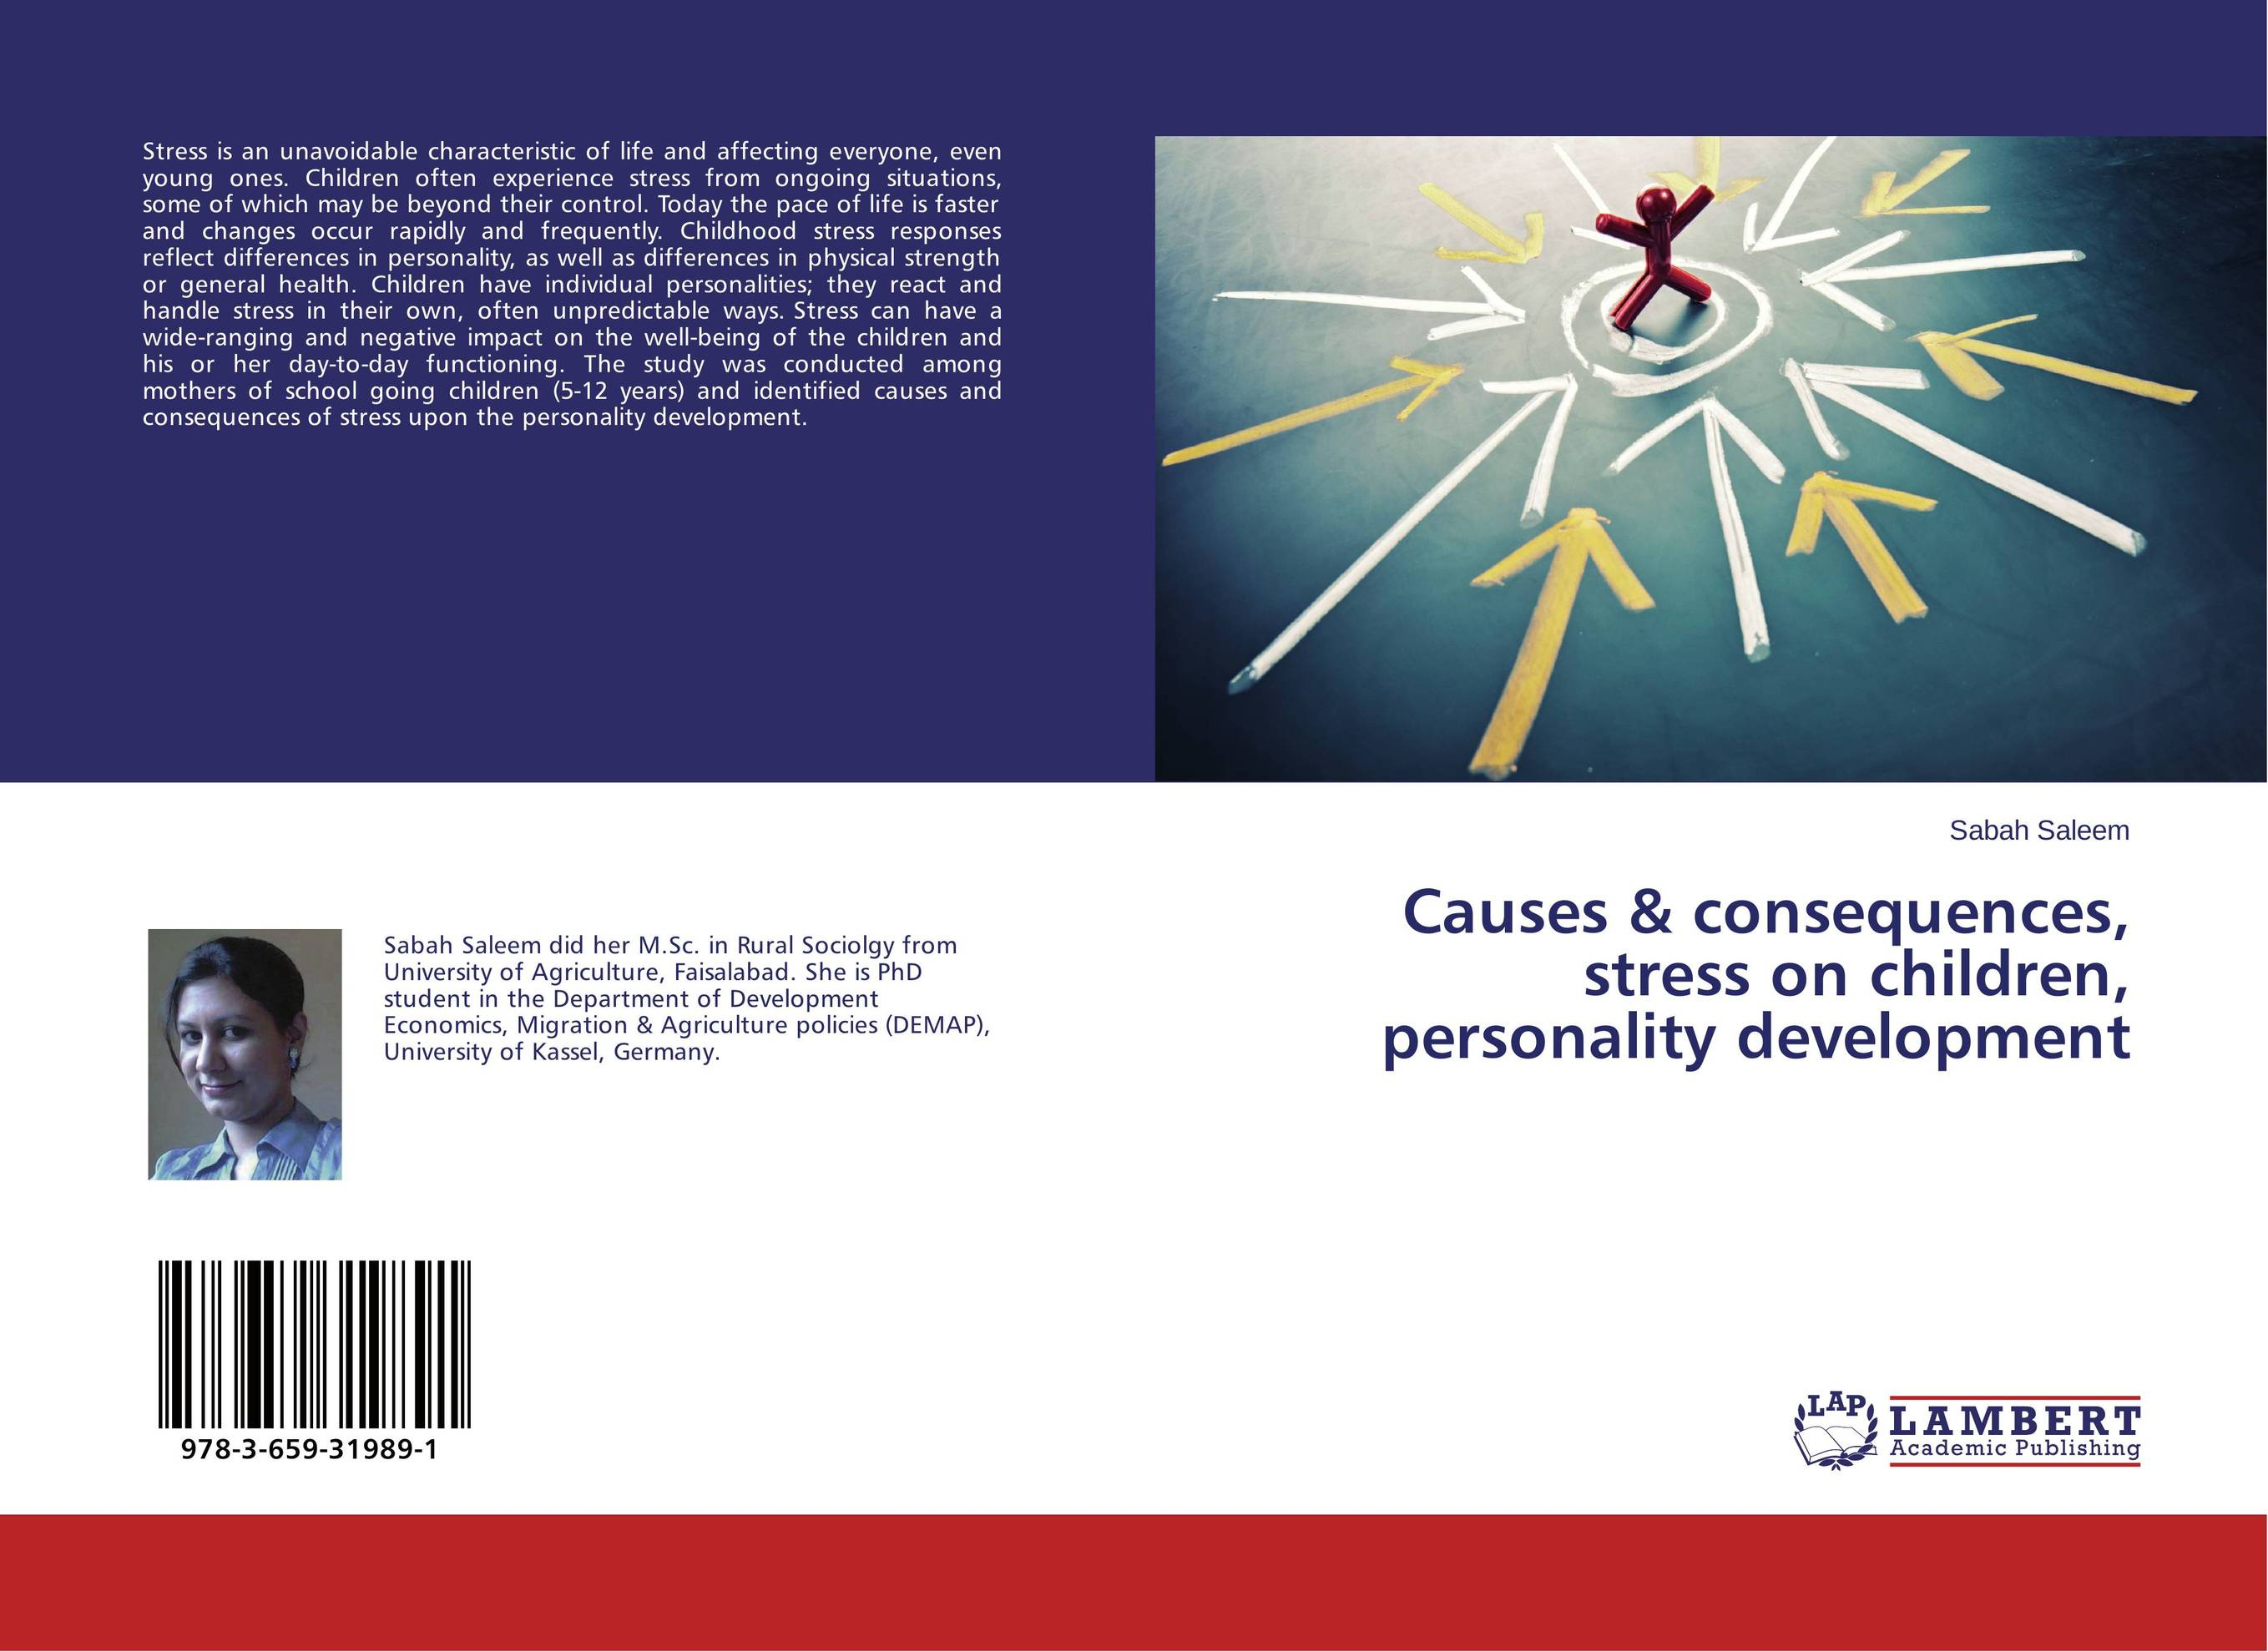 Causes & consequences, stress on children, personality development life style health and well being among teenagers